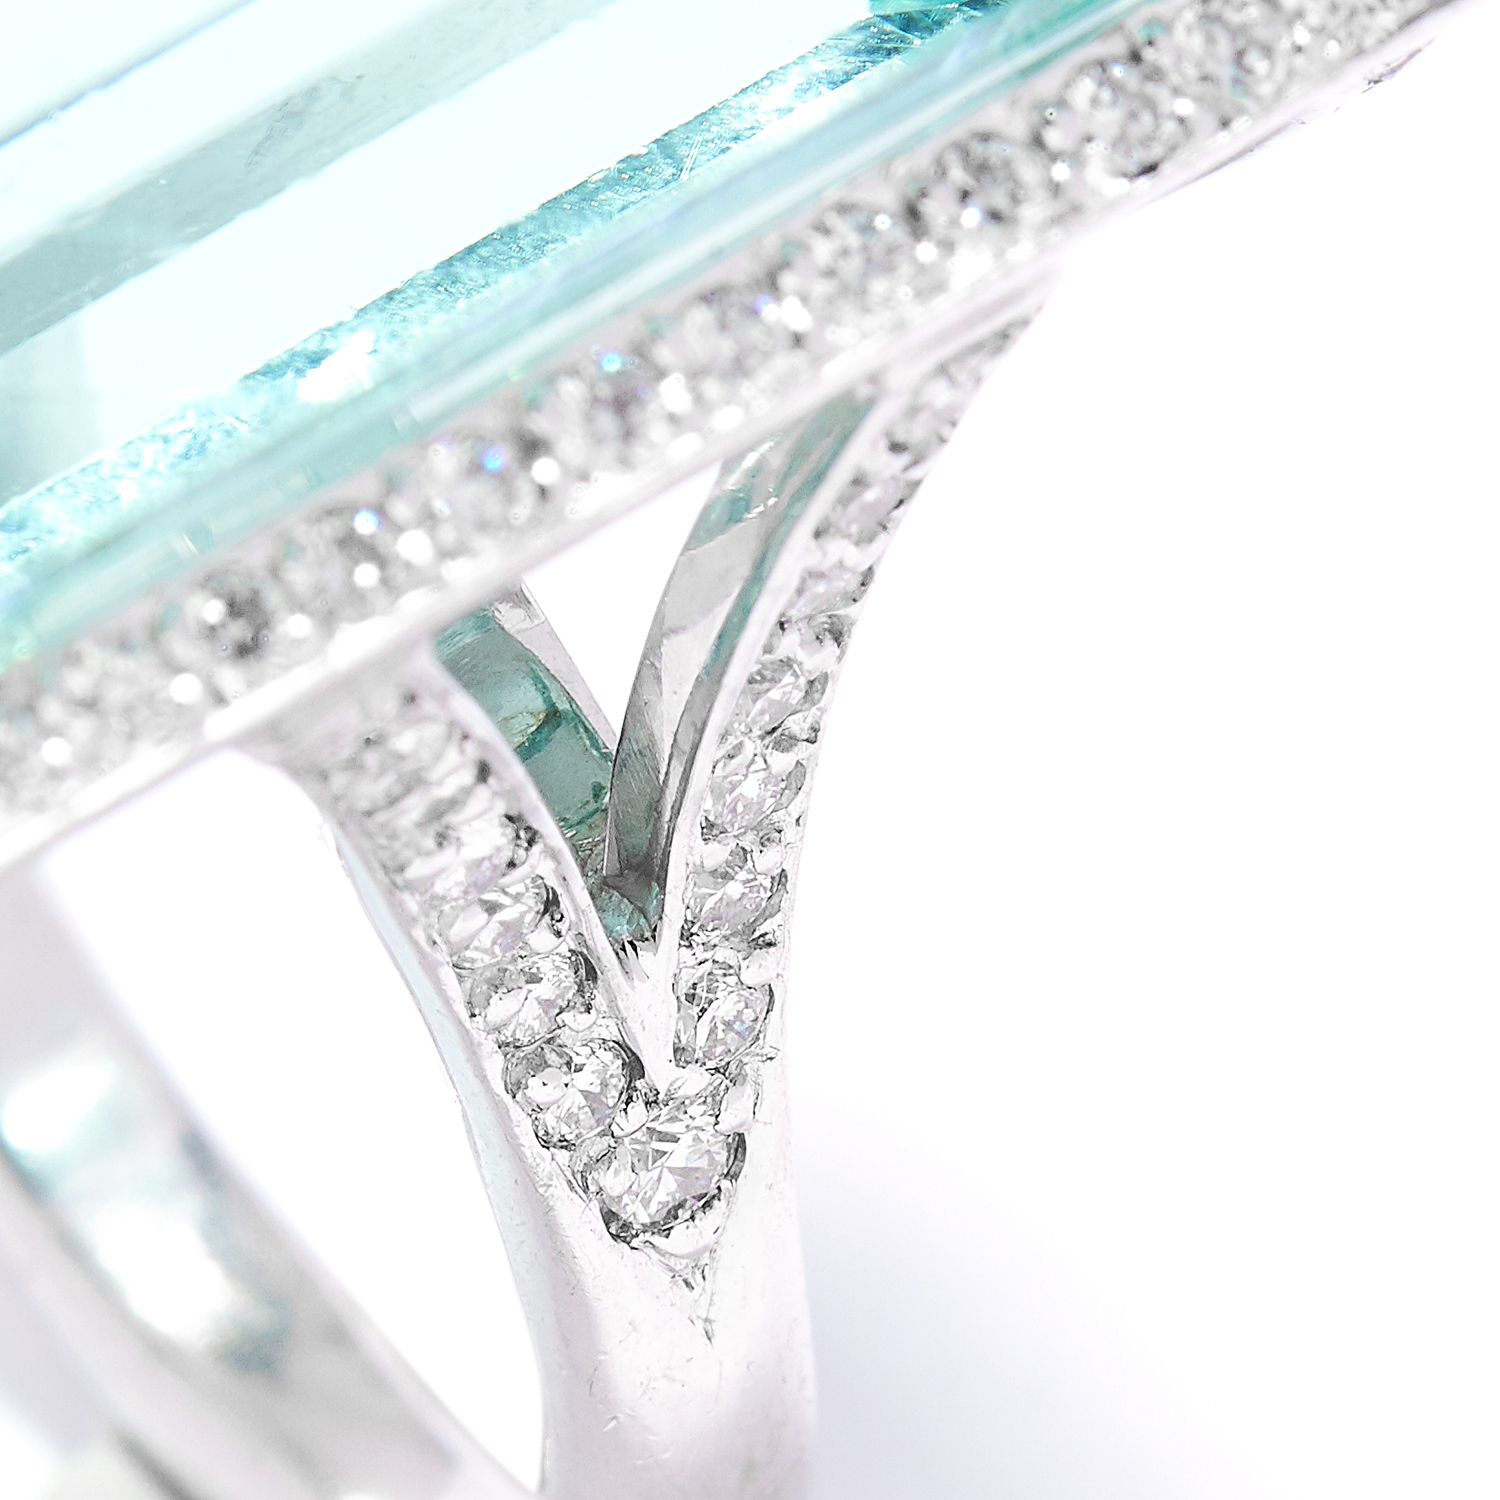 66.00 CARAT AQUAMARINE AND DIAMOND COCKTAIL RING in 18ct white gold, set with an emerald cut - Bild 2 aus 2